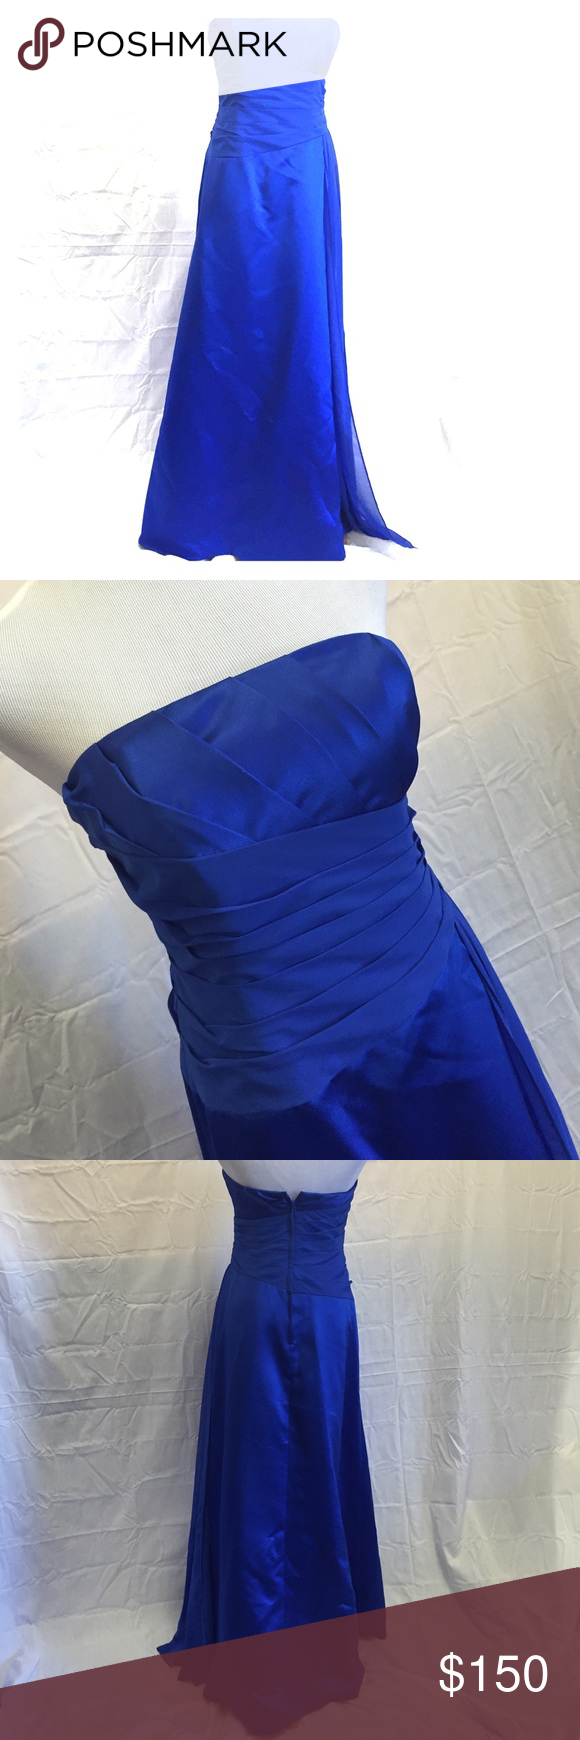 Davidus bridal bridesmaid dress size royal blue davidus bridal